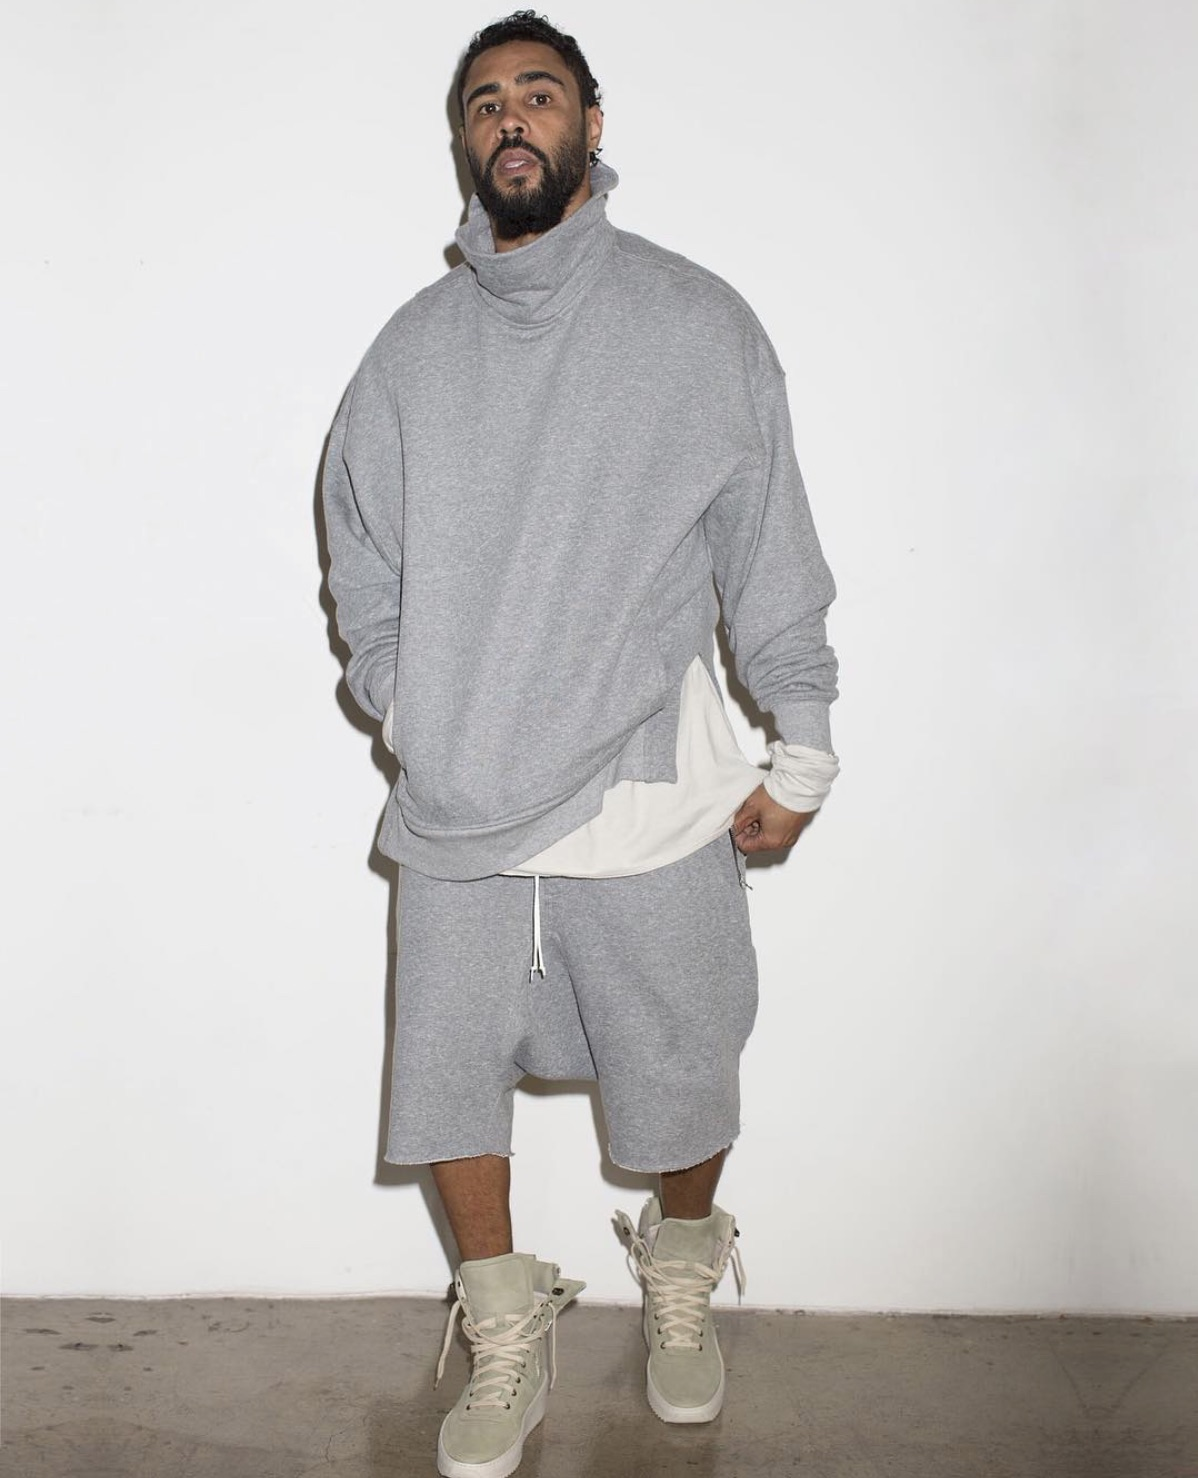 Jerry Lorenzo shows off new Fear of God colour on Instagram